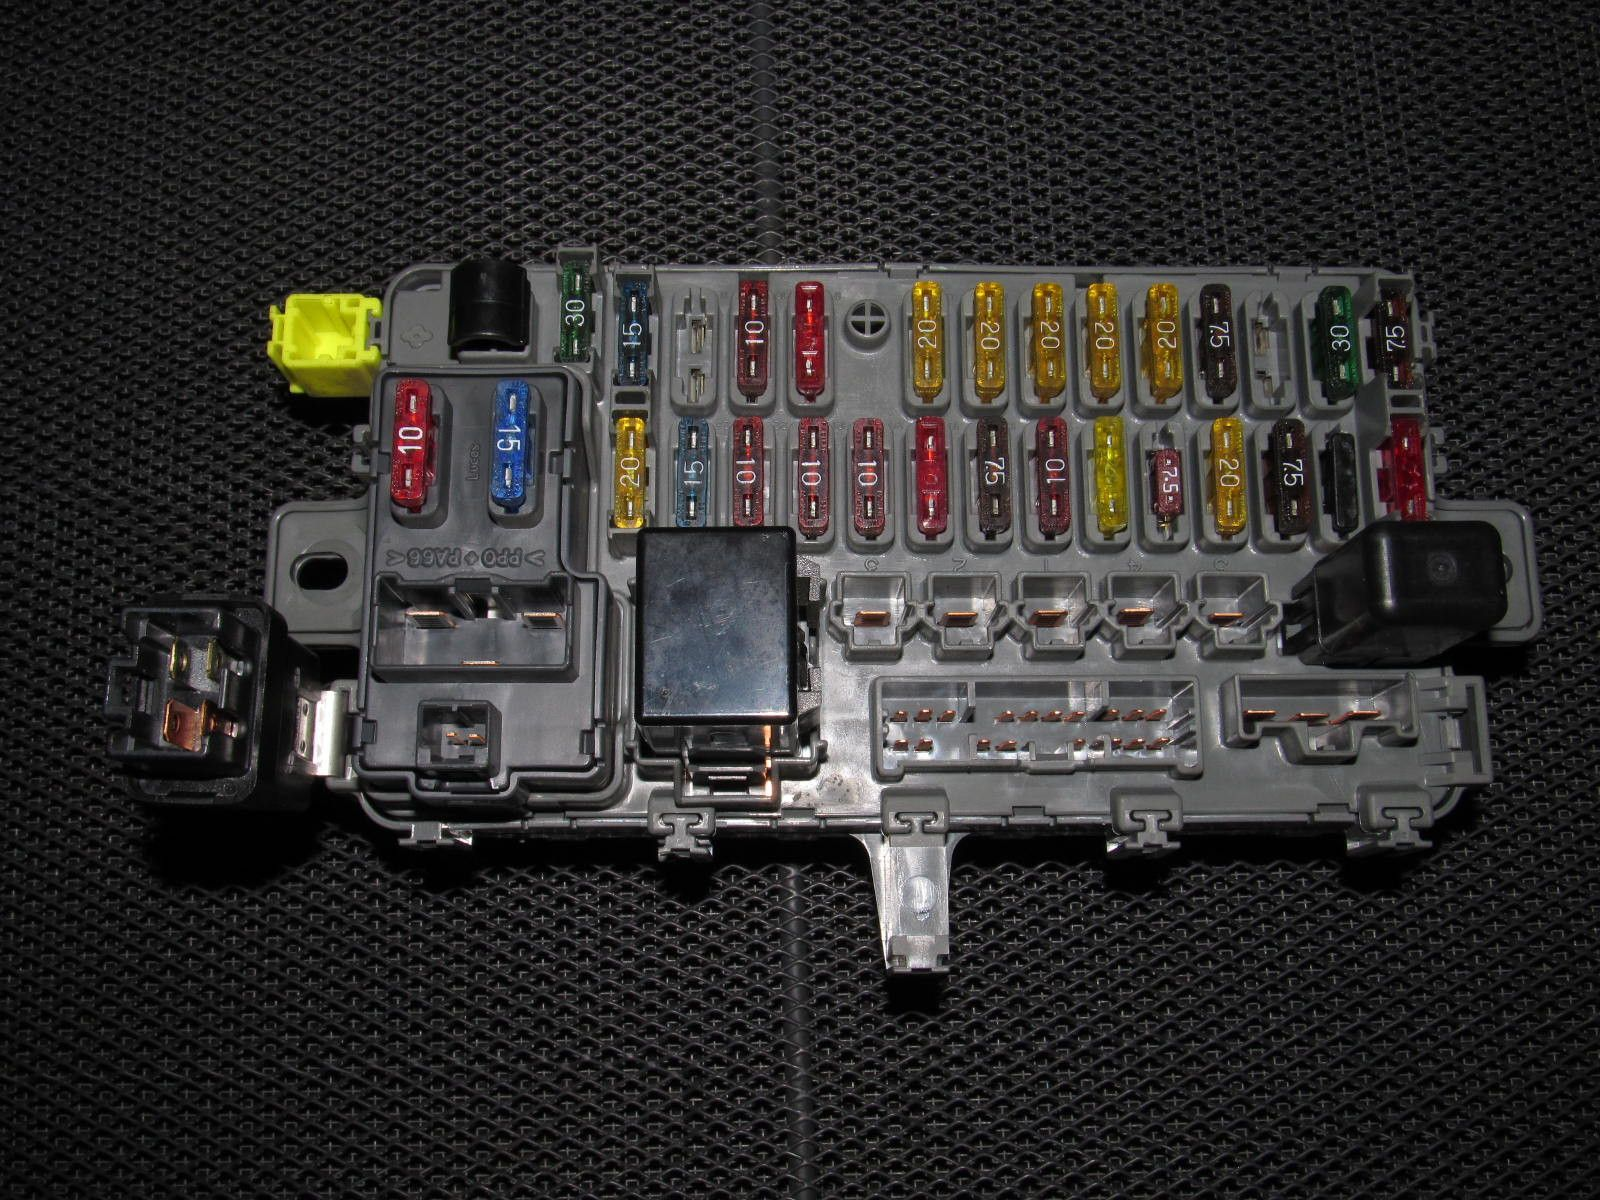 8bdb45f0d322eddcafdfa2d956f0f91f 94 95 96 97 98 99 00 01 acura integra oem interior fuse box products 95 Integra Fuse Box Diagram at soozxer.org